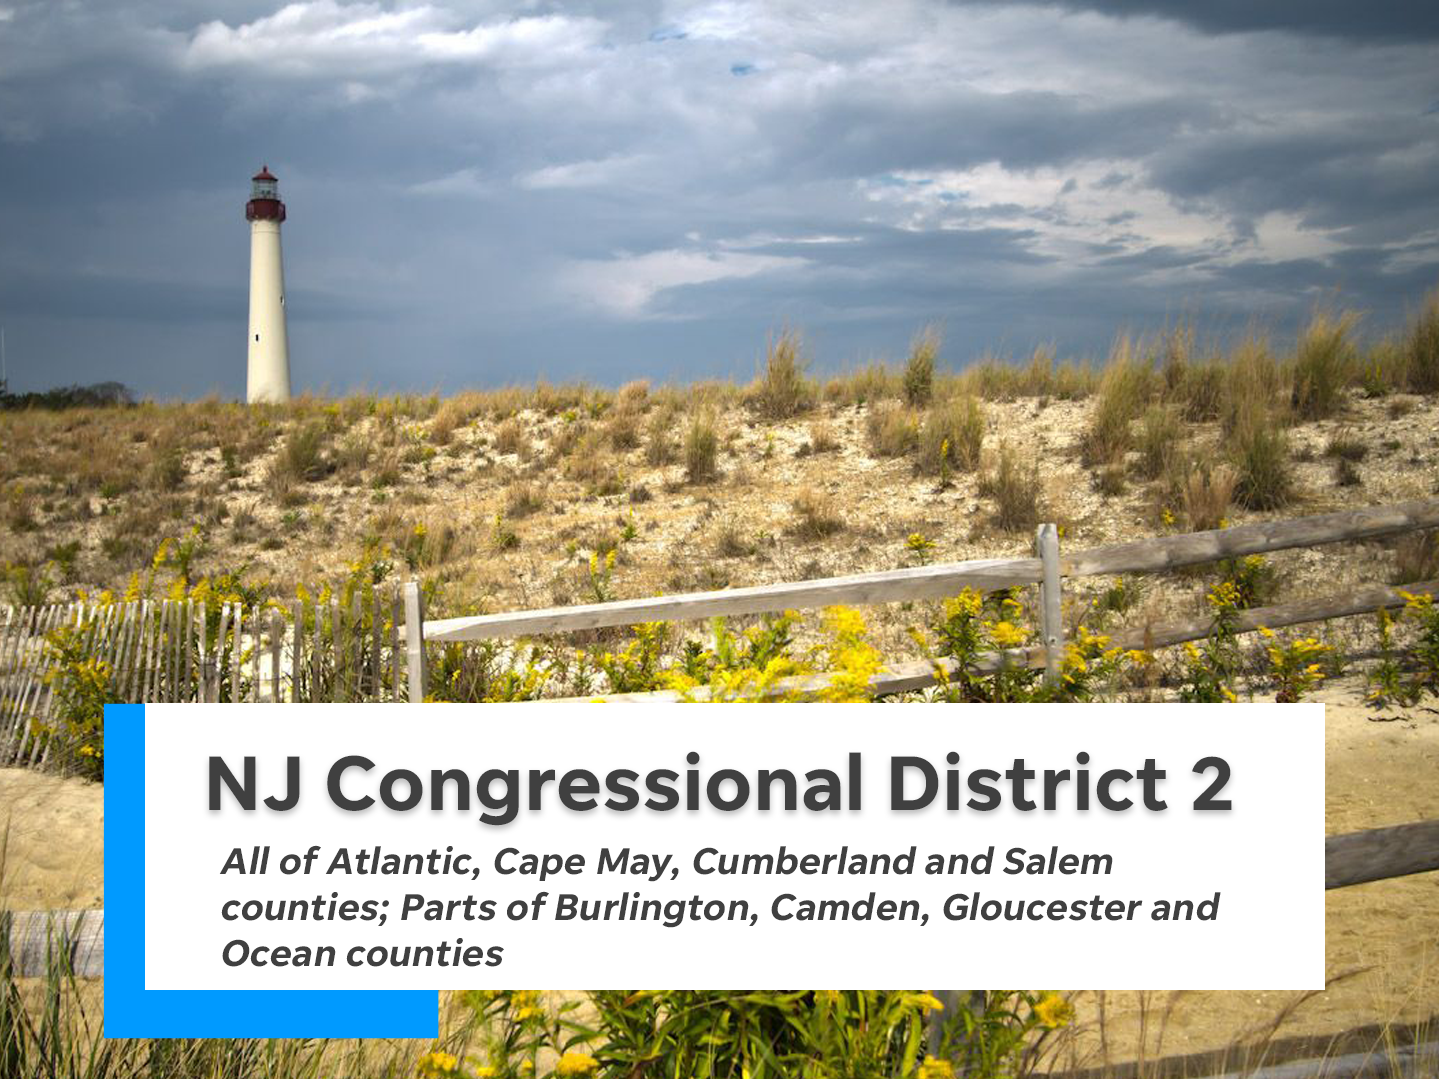 NJ's second congressional district is comprised of Atlantic, Cape May, Cumberland and Salem counties and parts of Burlington, Camden, Gloucester and Ocean counties.